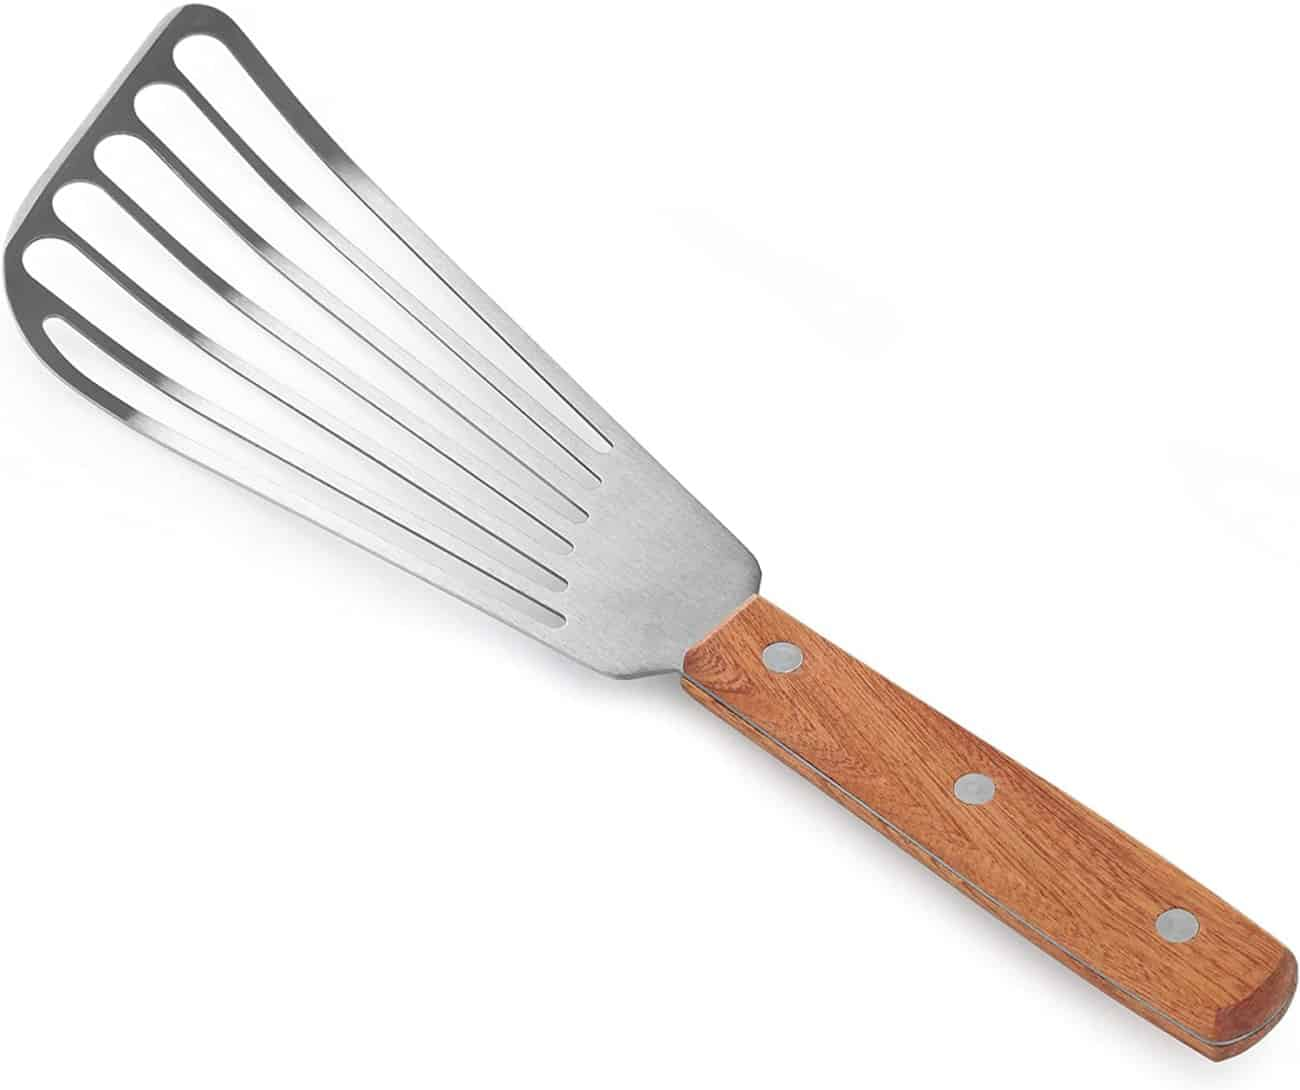 Fish spatula with wooden handle